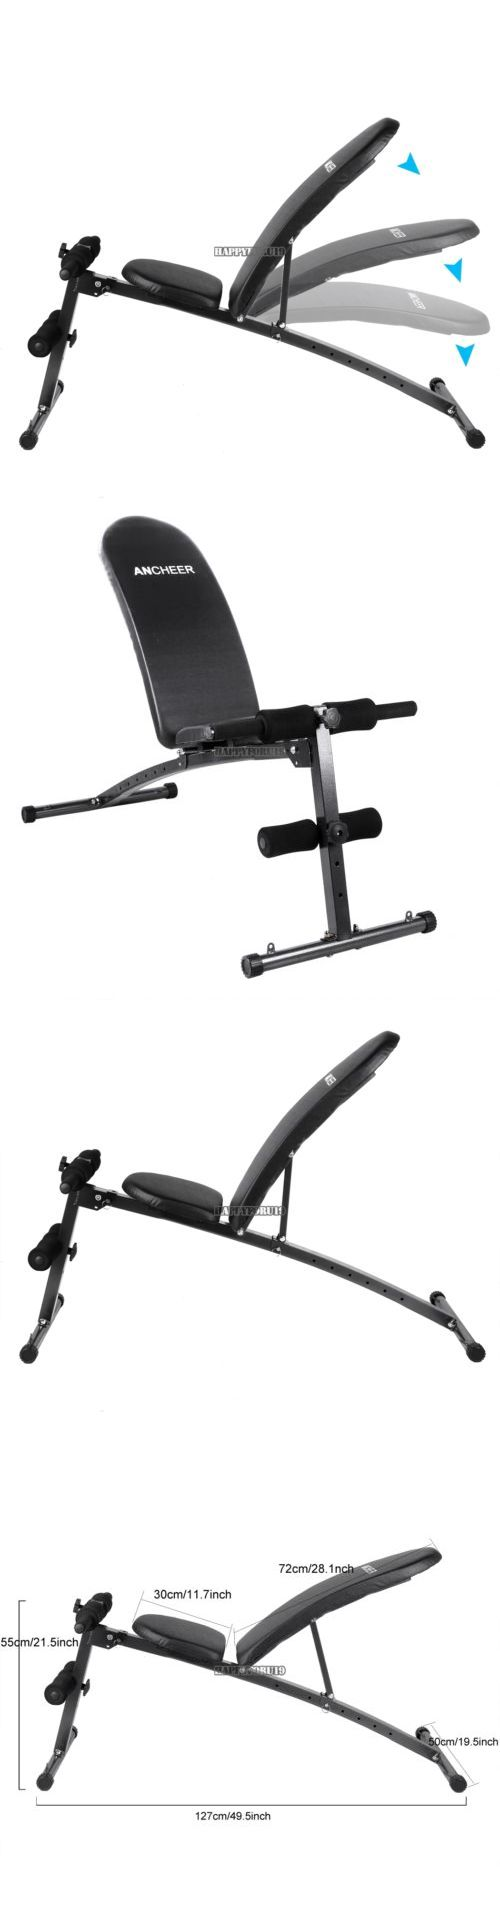 Benches 15281: 4 Adjustable Weight Bench Dumbbells Lifting Incline Flat Decline Press Fitness BUY IT NOW ONLY: $48.99